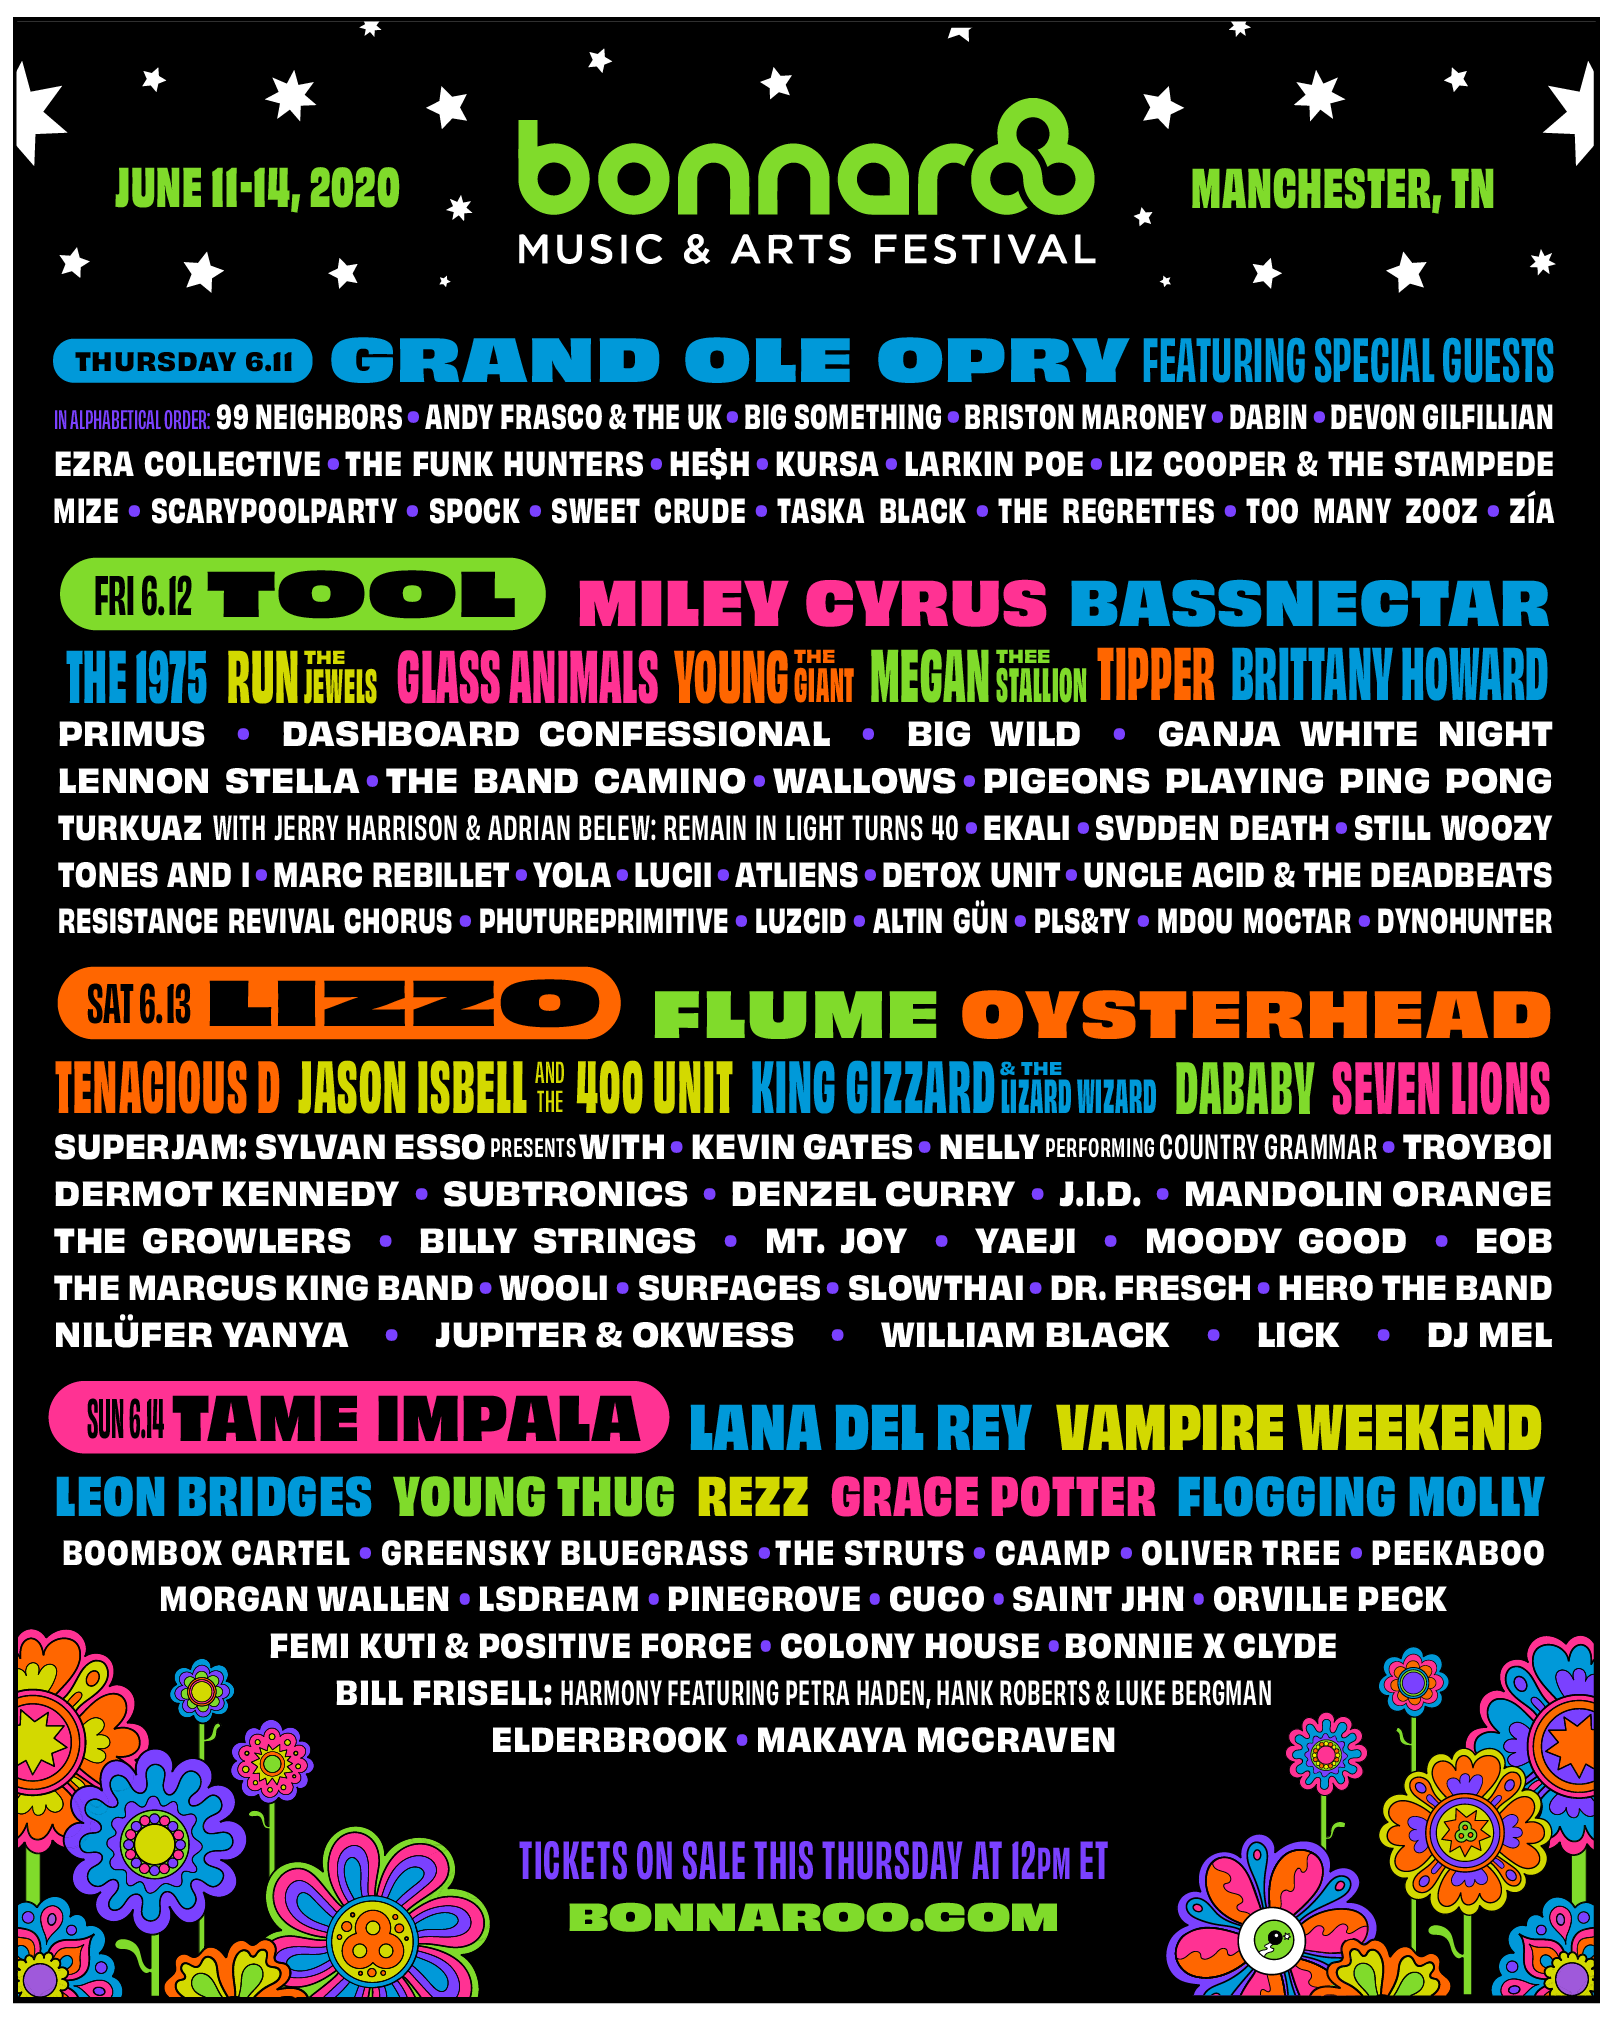 DC to play Bonnaroo 2020!